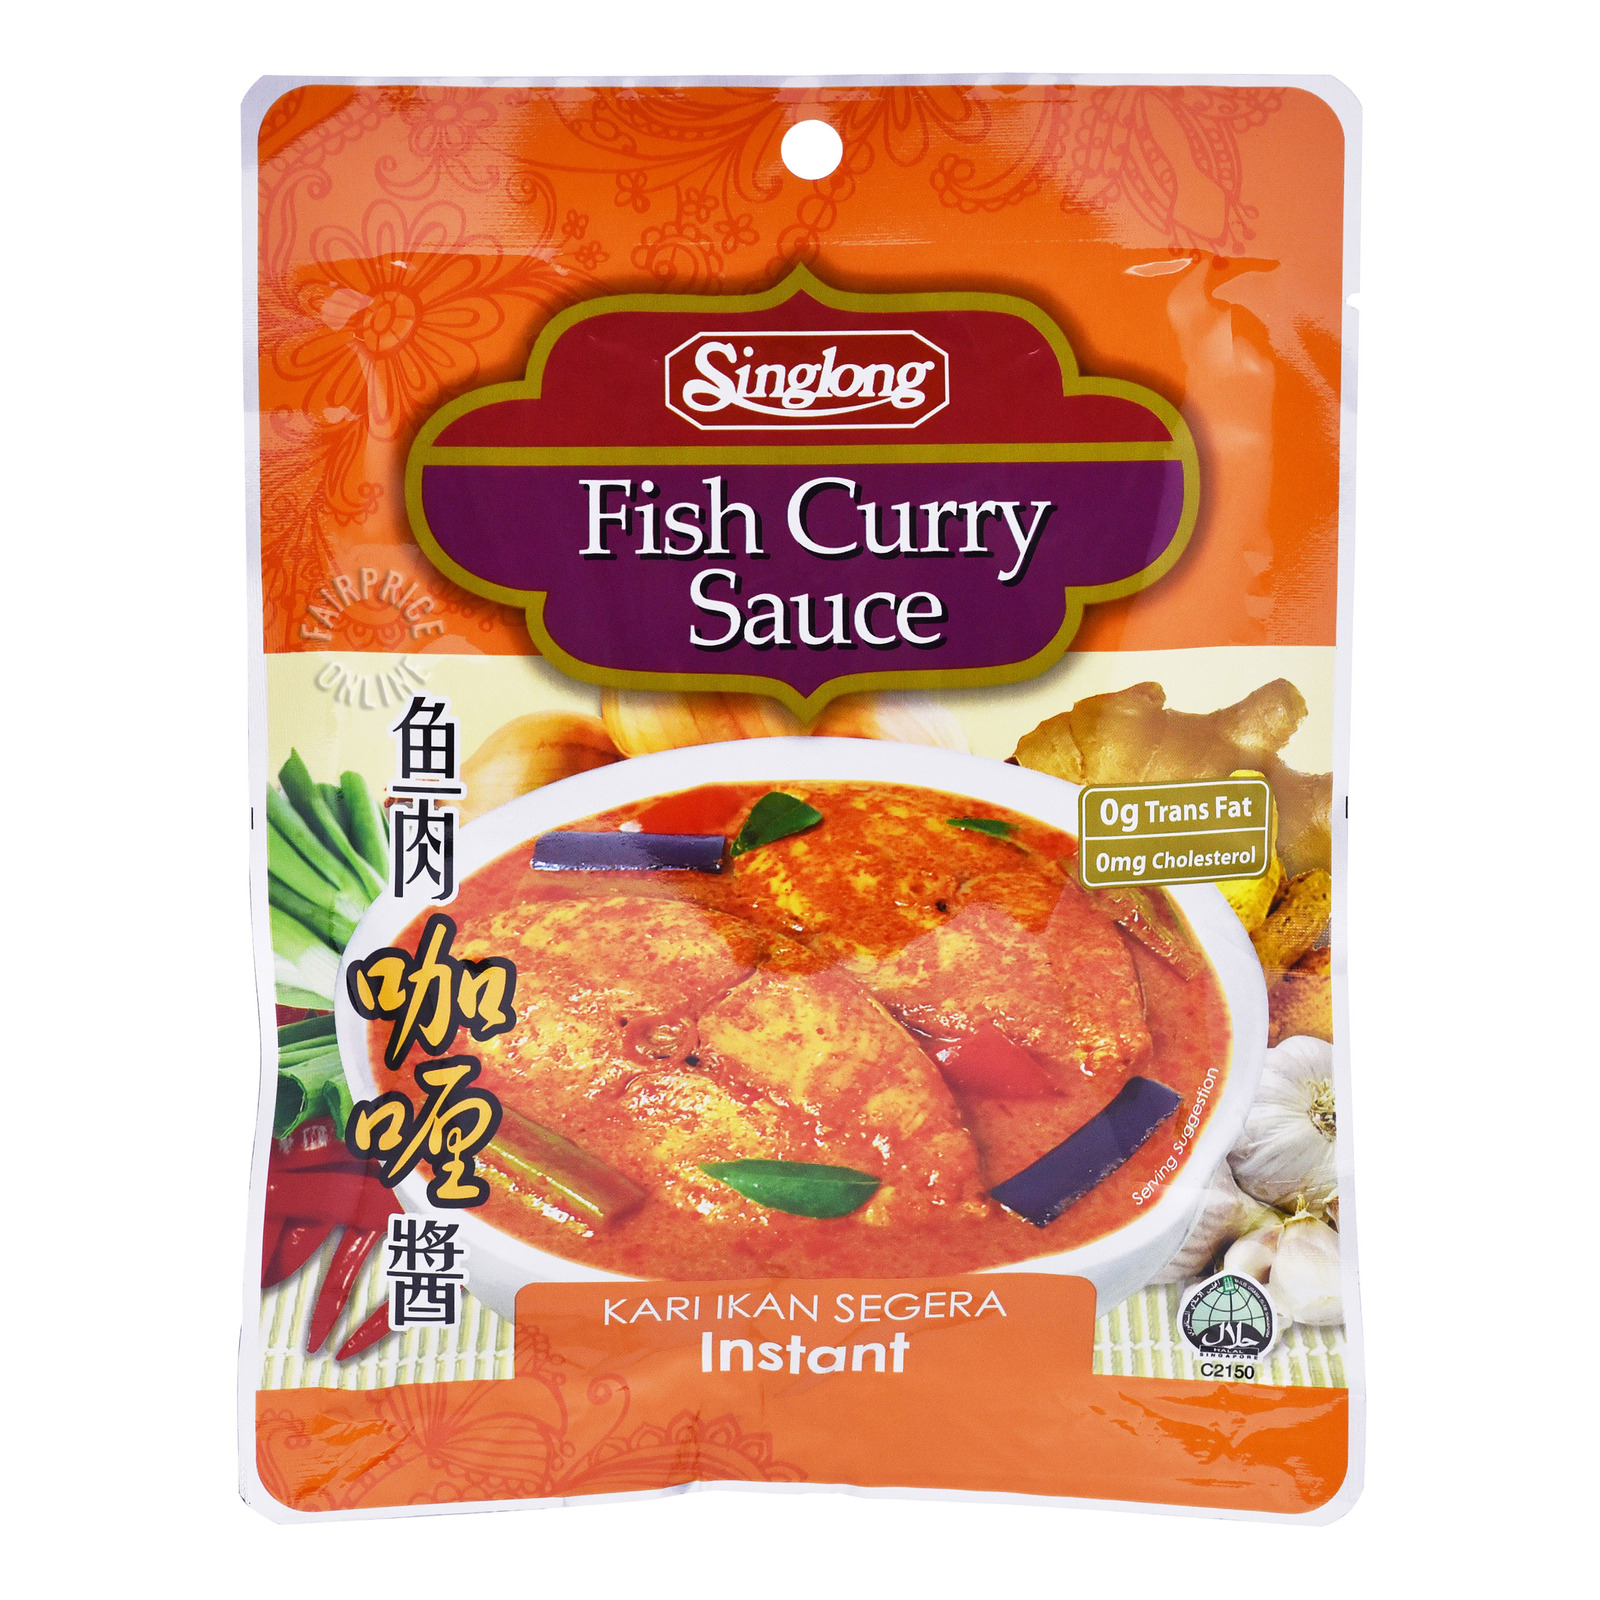 Sing Long Instant Sauce - Fish Curry